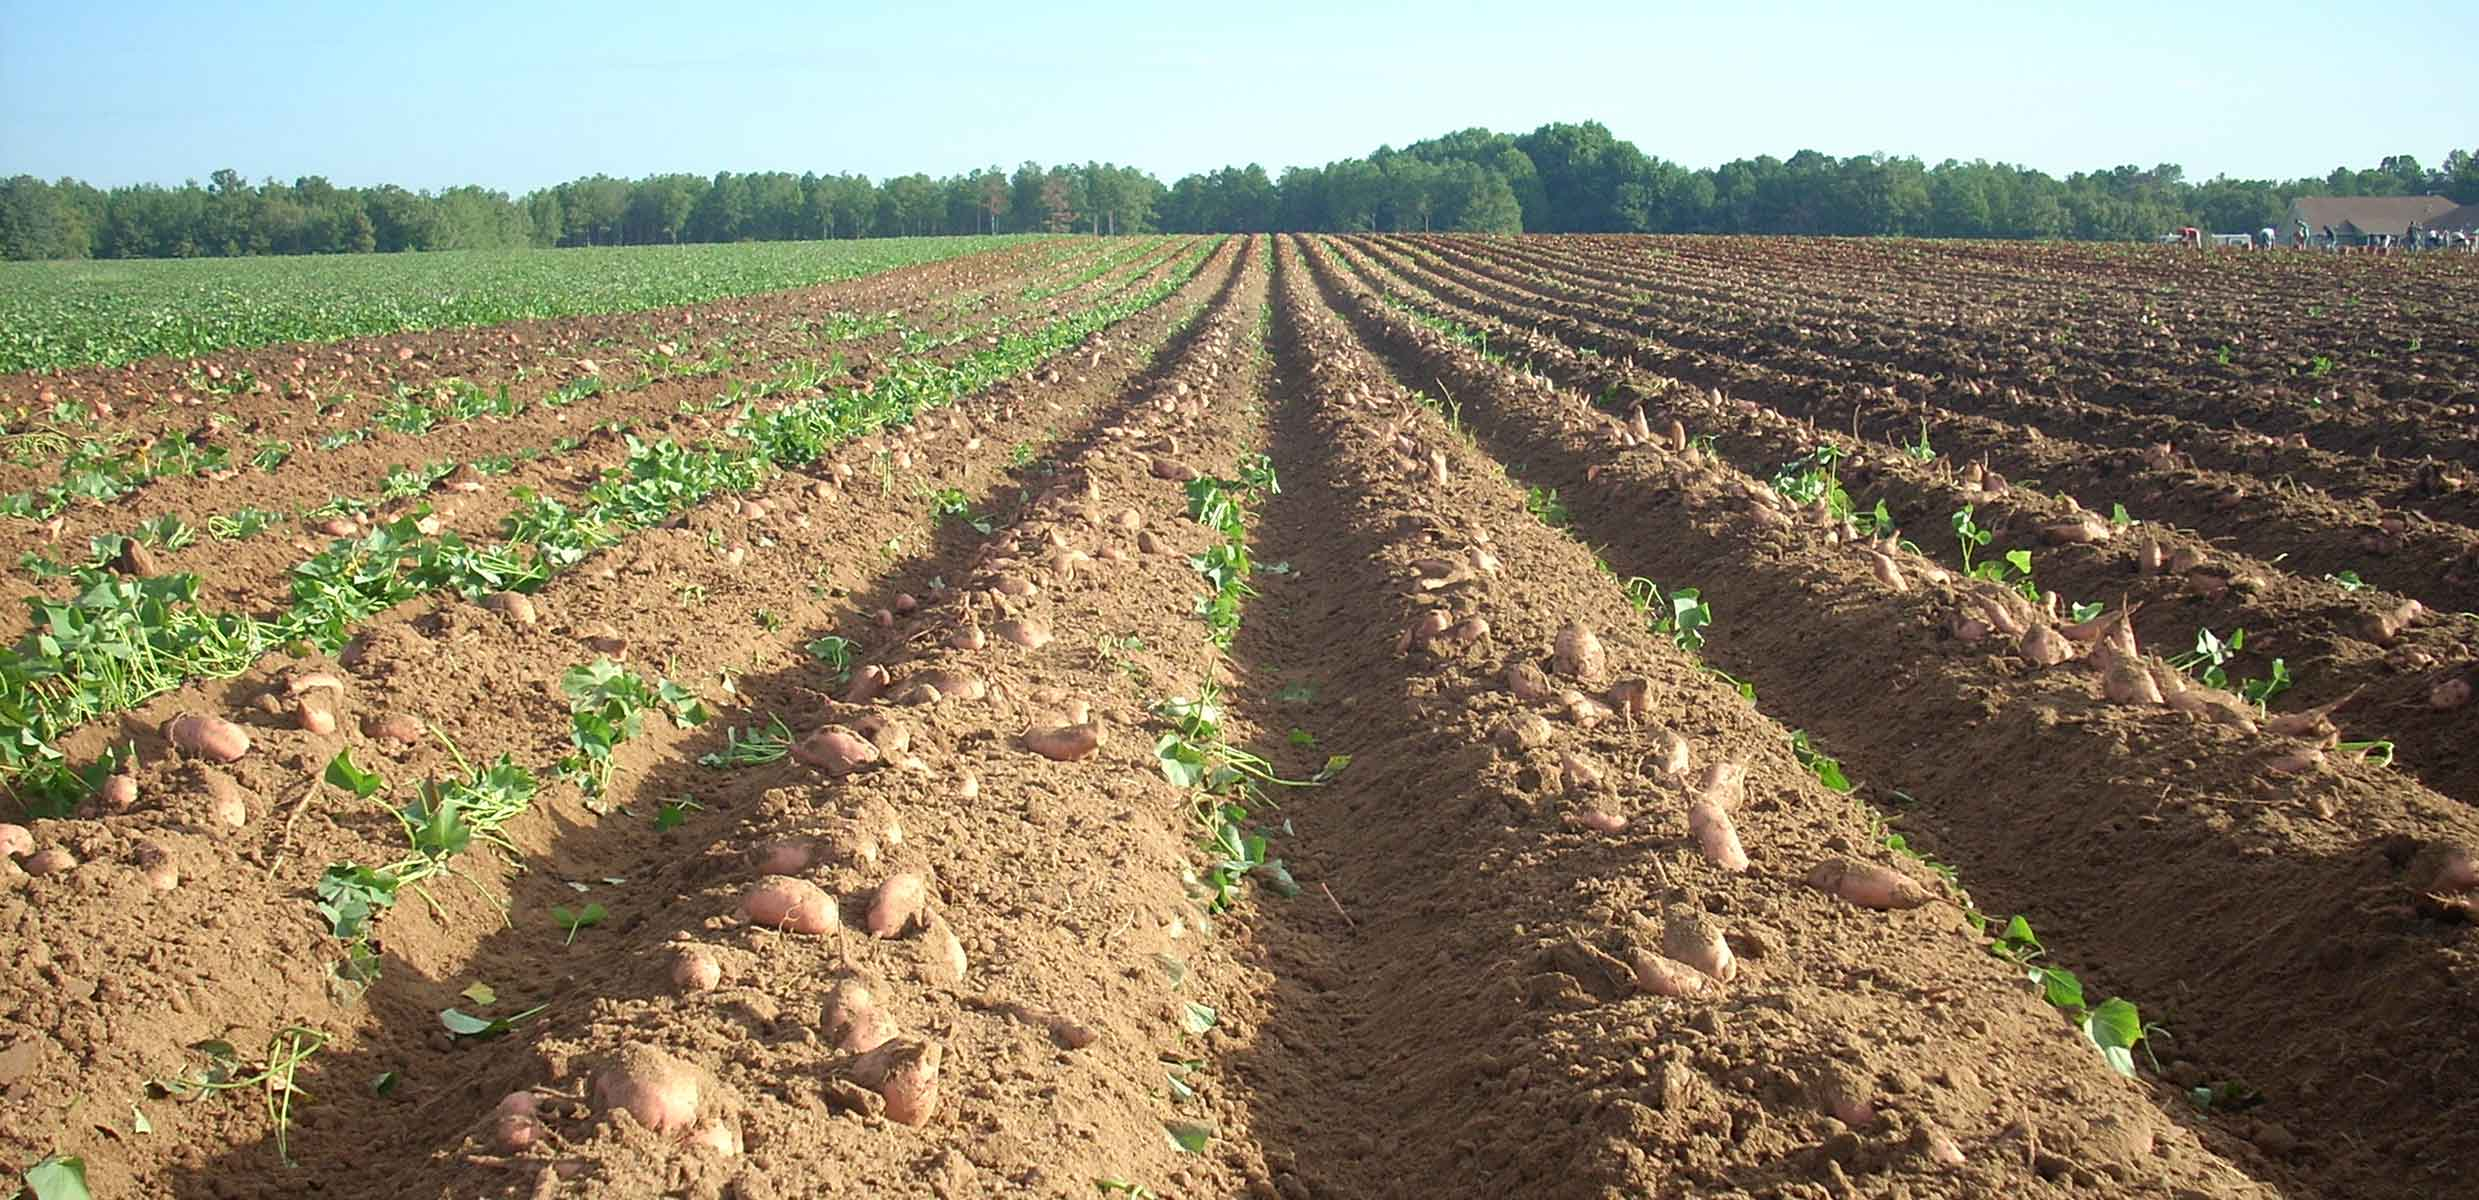 Photograph of Sweet Potato growing in the perfect climate of Barfoots SCL farm in Senegal